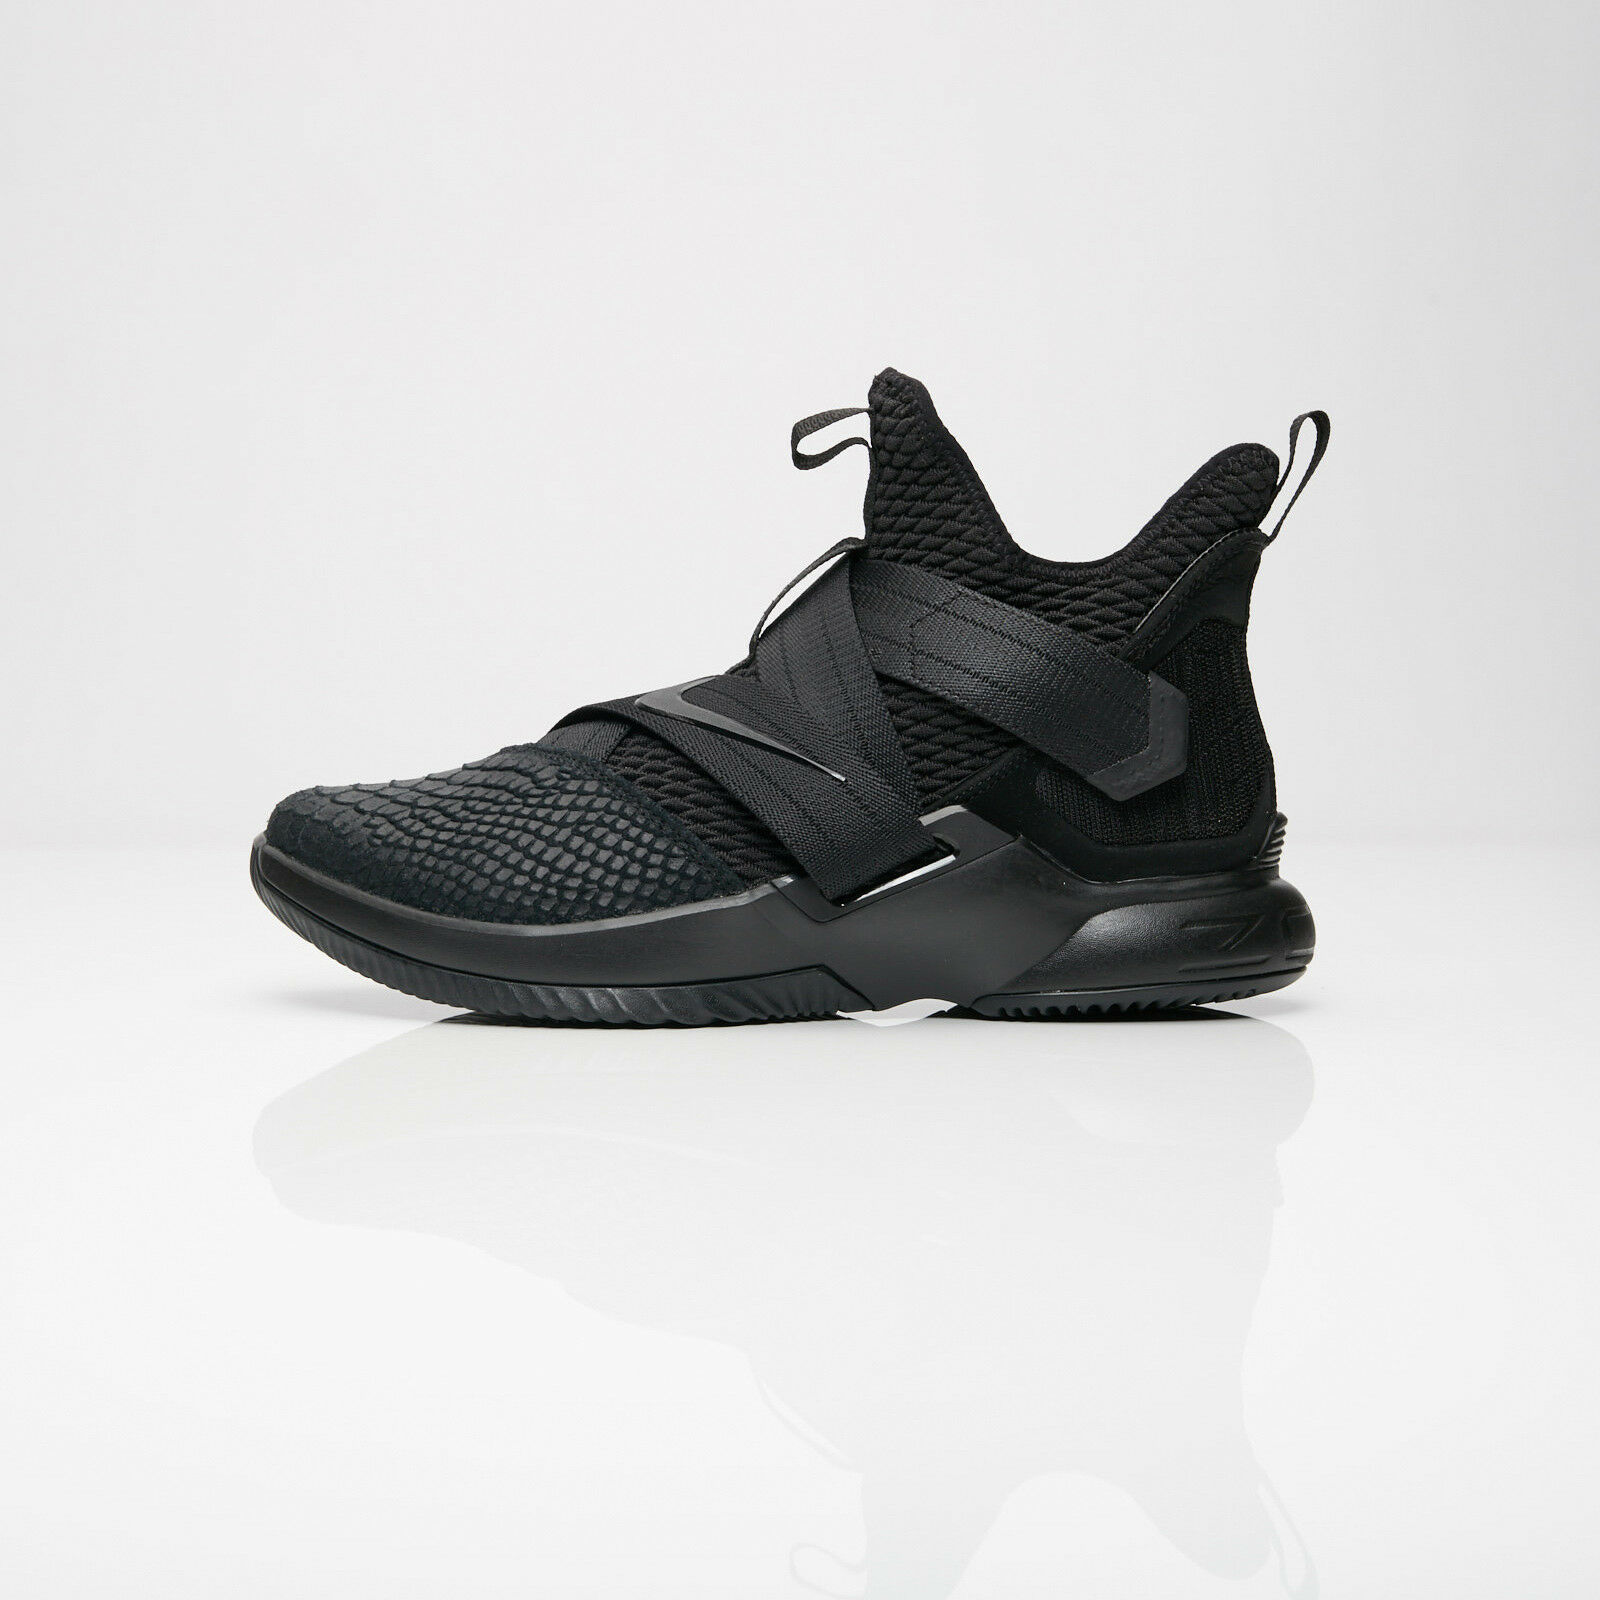 AO4054-003 Nike Lebron Soldier XII SFG Basketball Triple Black Comfortable The most popular shoes for men and women